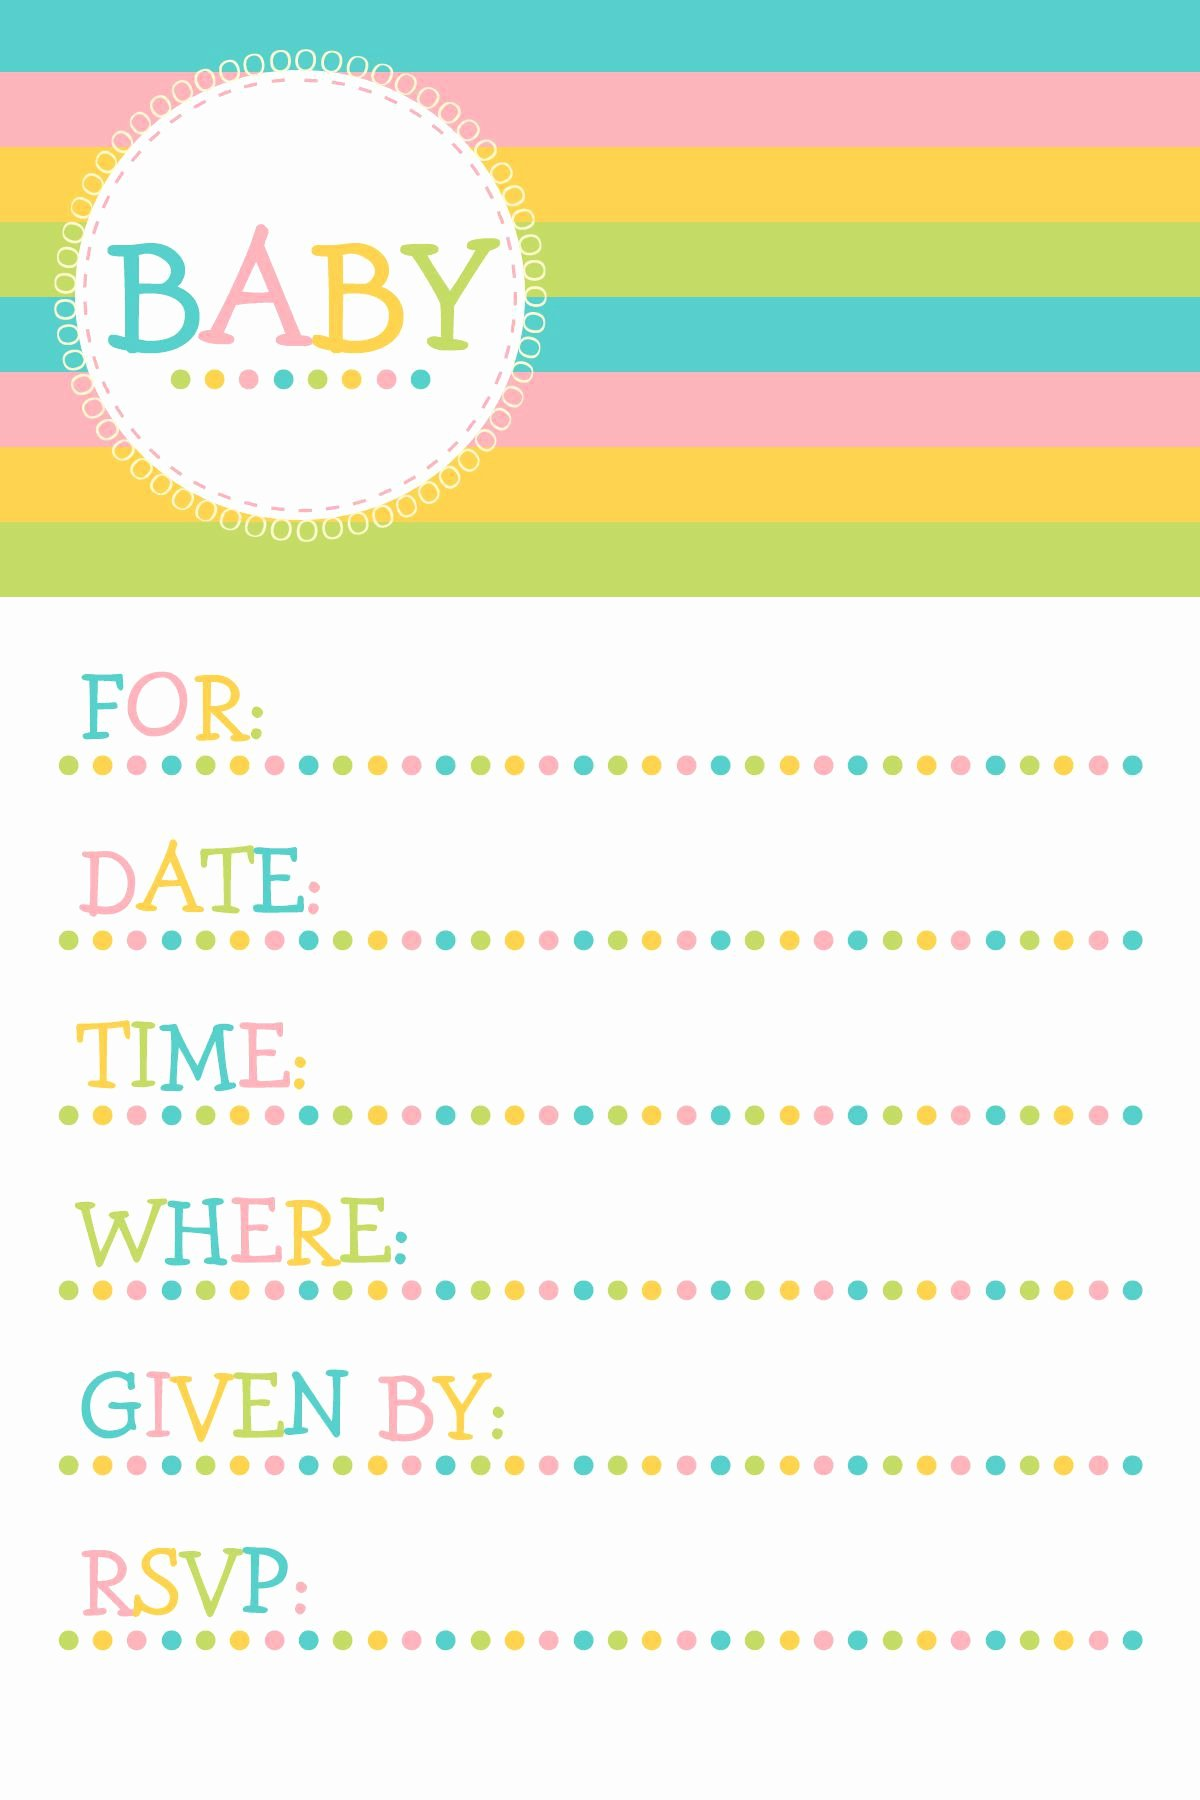 Free Baby Invitation Template Inspirational Free Baby Invitation Template Free Baby Shower